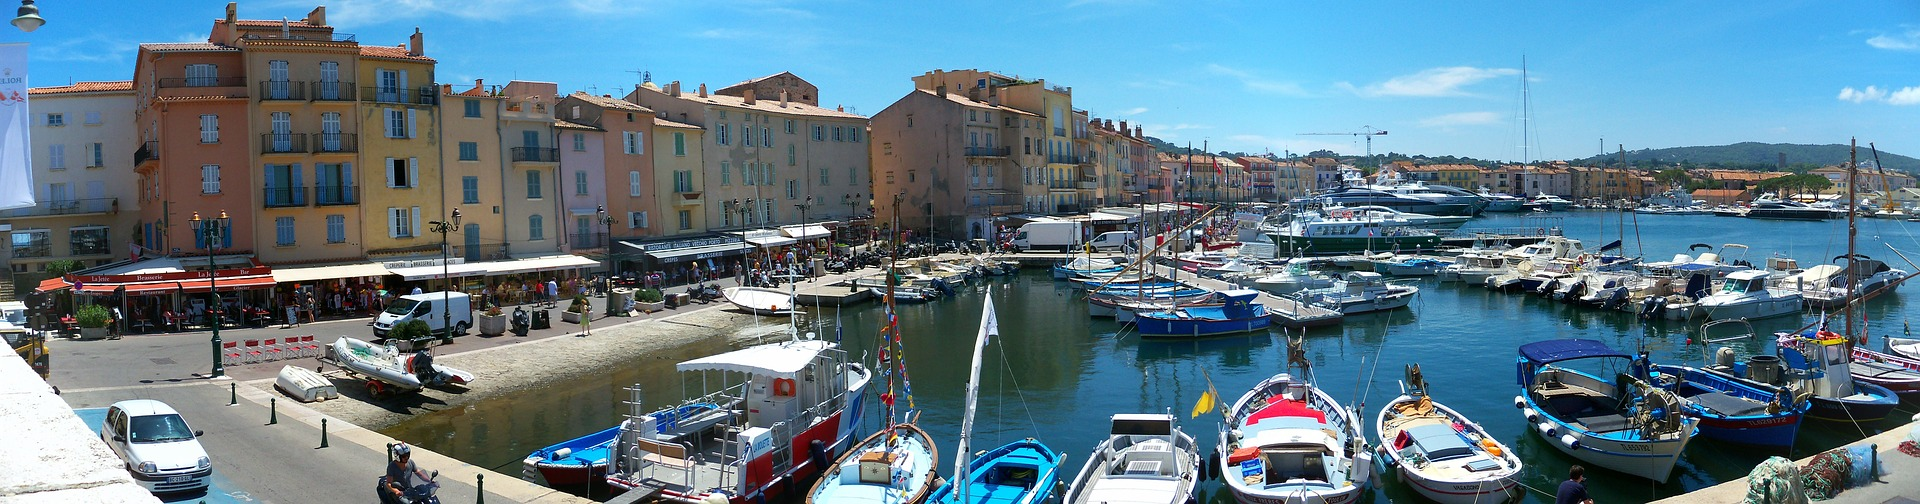 Saint-Tropez facts